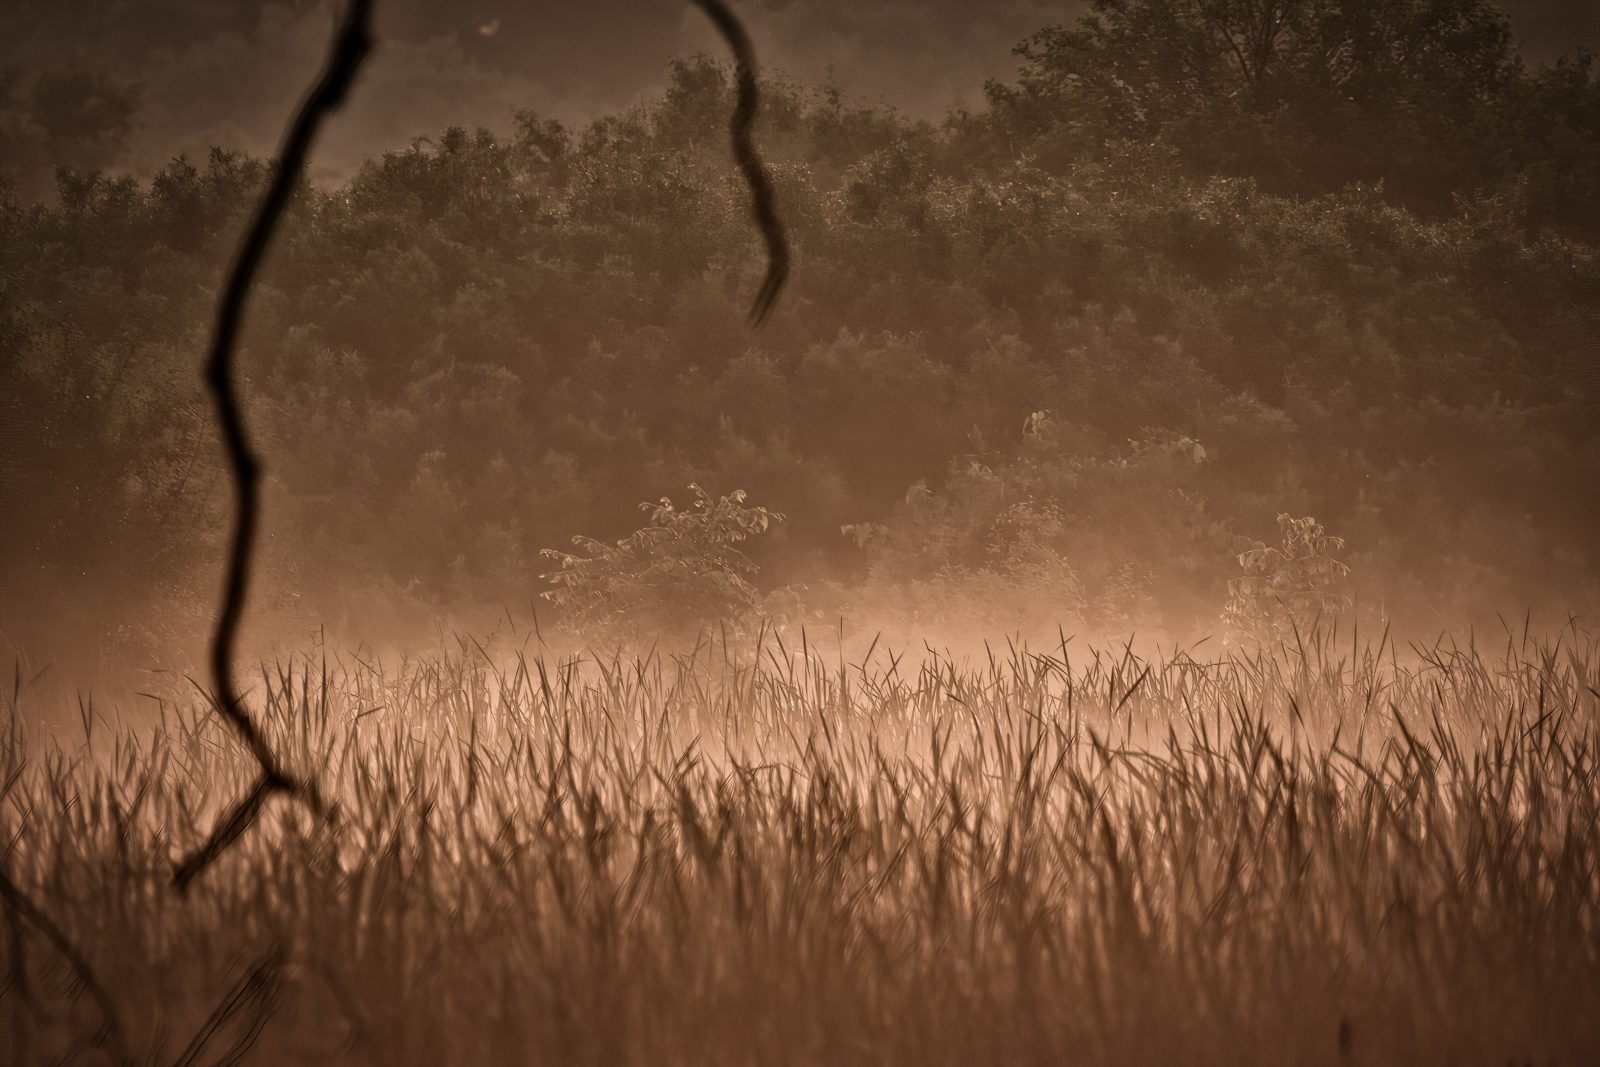 Morning Sunrise on Wetland with Cattails and High Grass